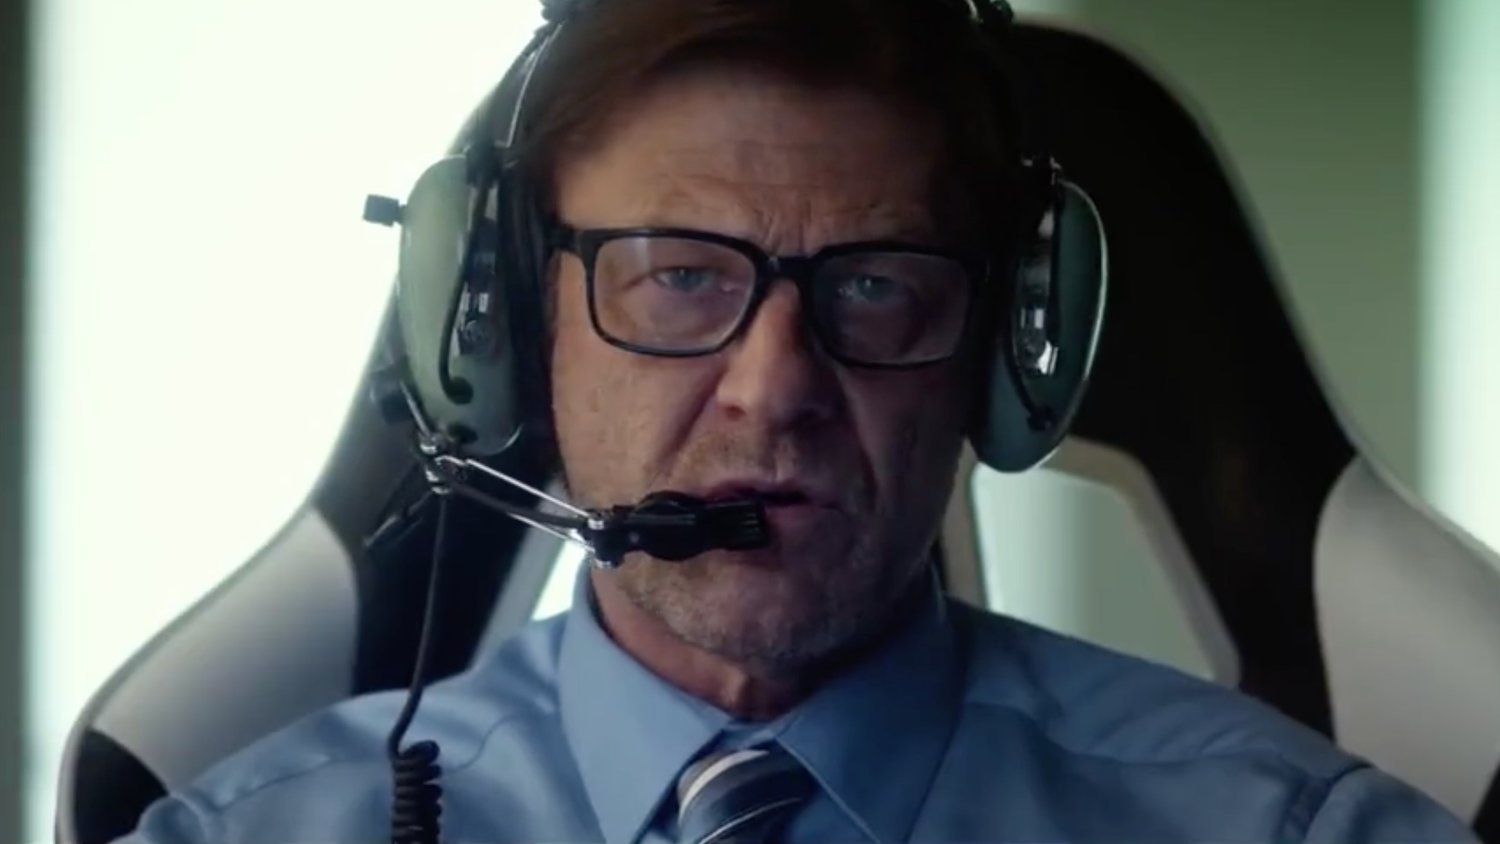 Sean Bean Plays a CIA Drone Pilot in the Trailer For The Upcoming Thriller DRONE